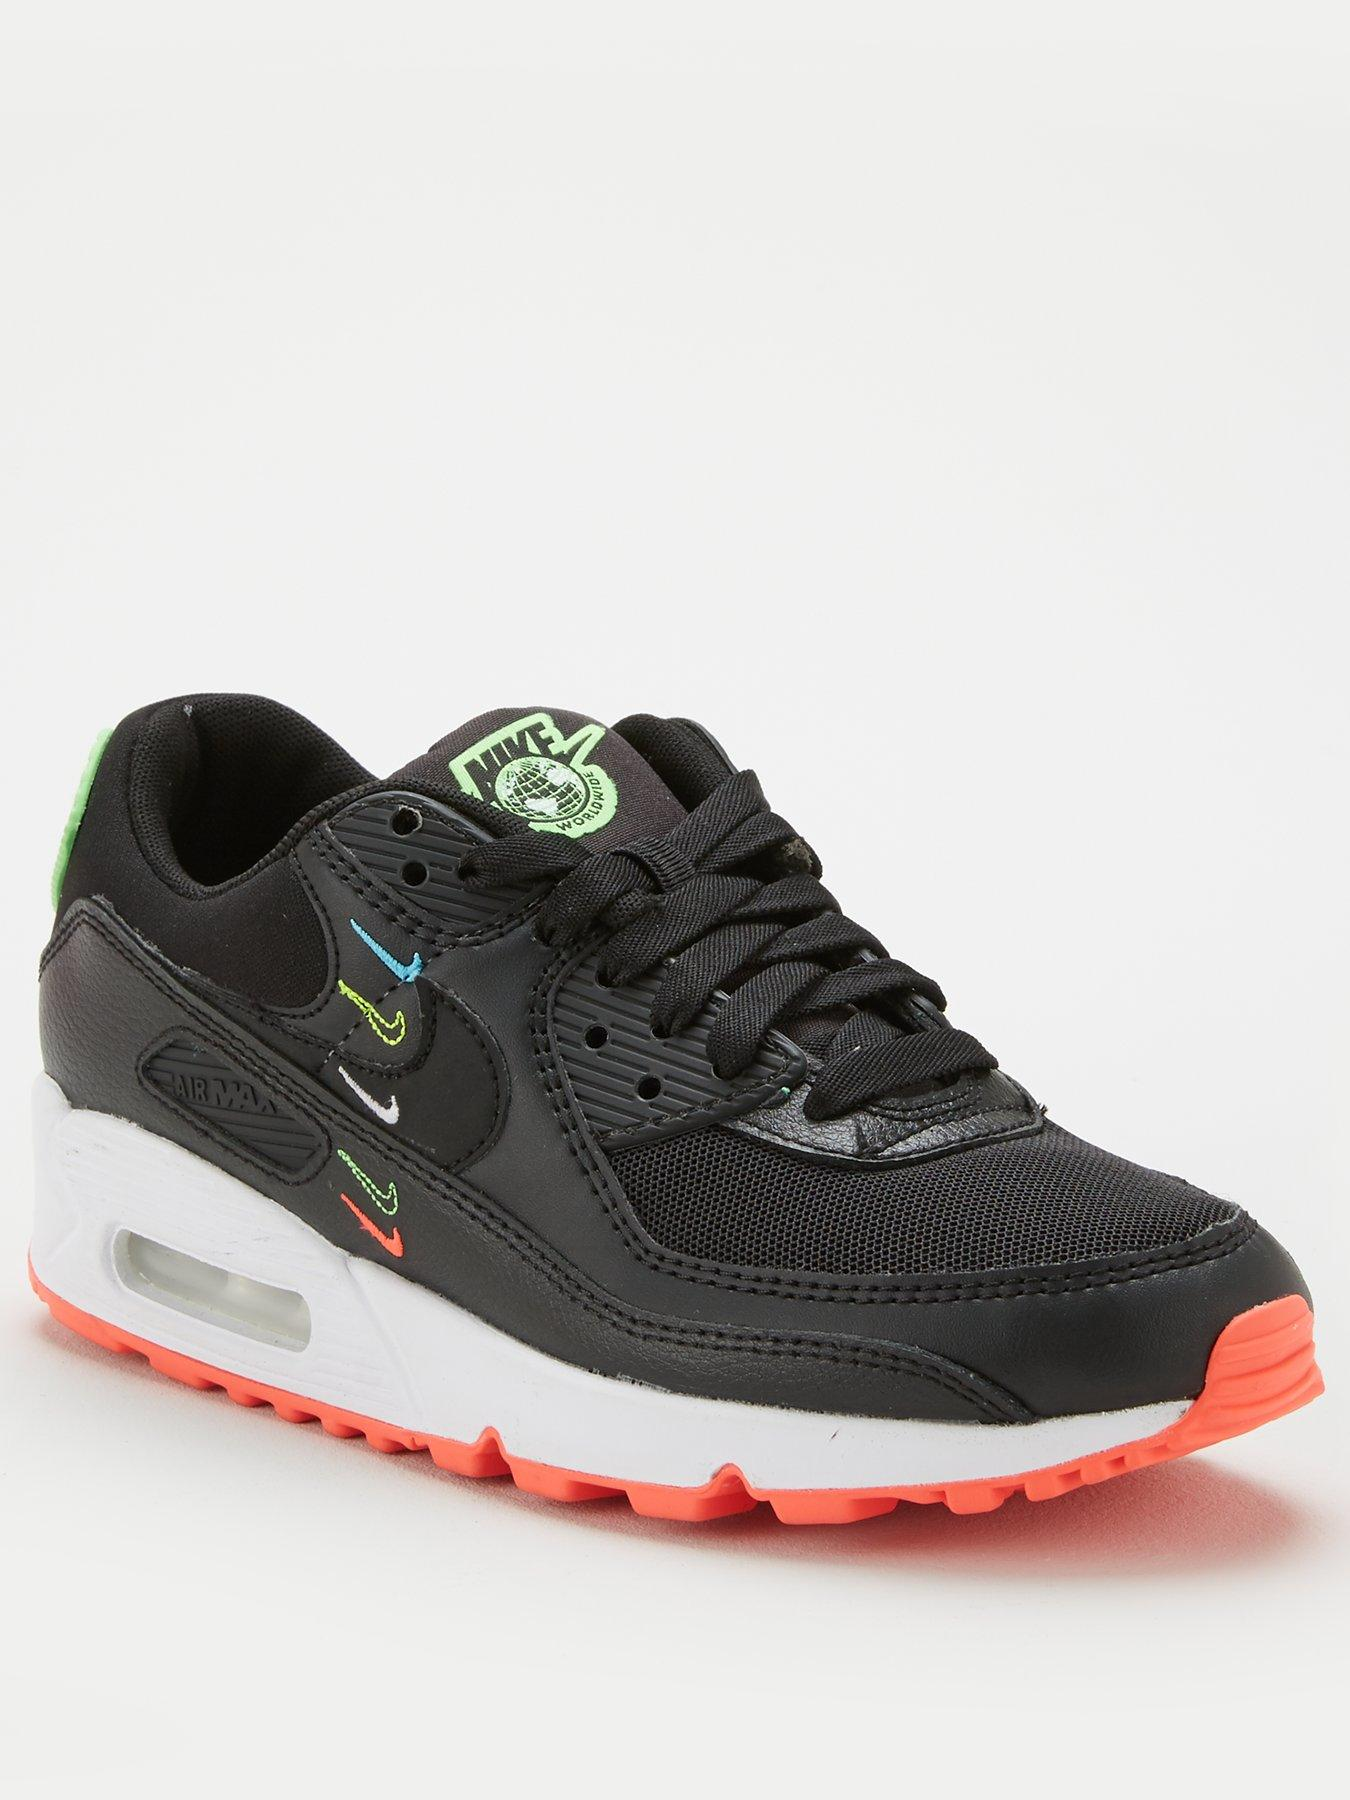 black nike shoes with green tick